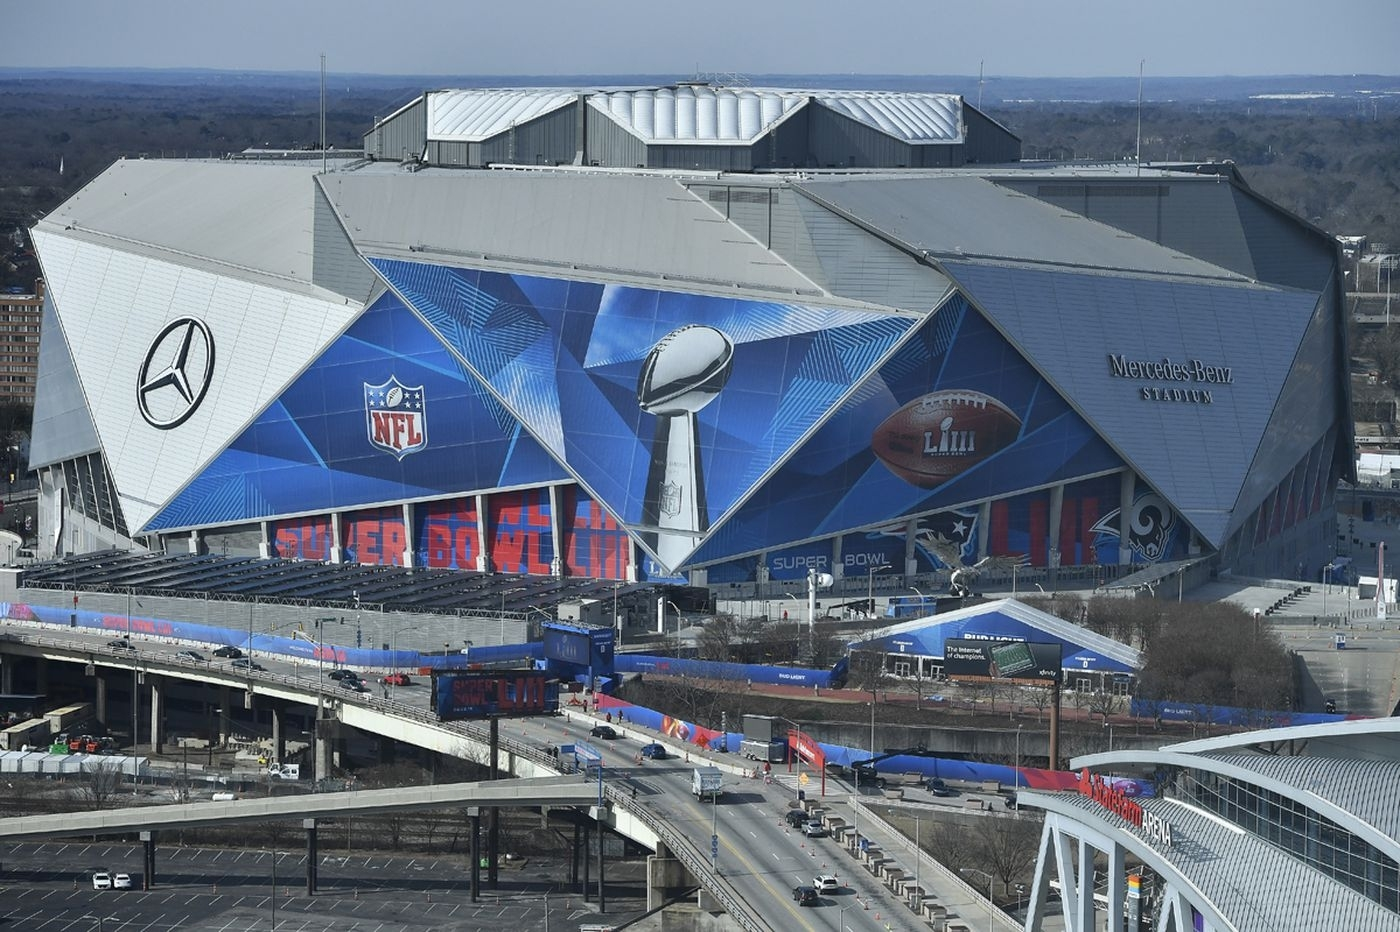 What Time Will Super Bowl 2019 Start (And End) Tonight? pertaining to The Super Bowl 2019